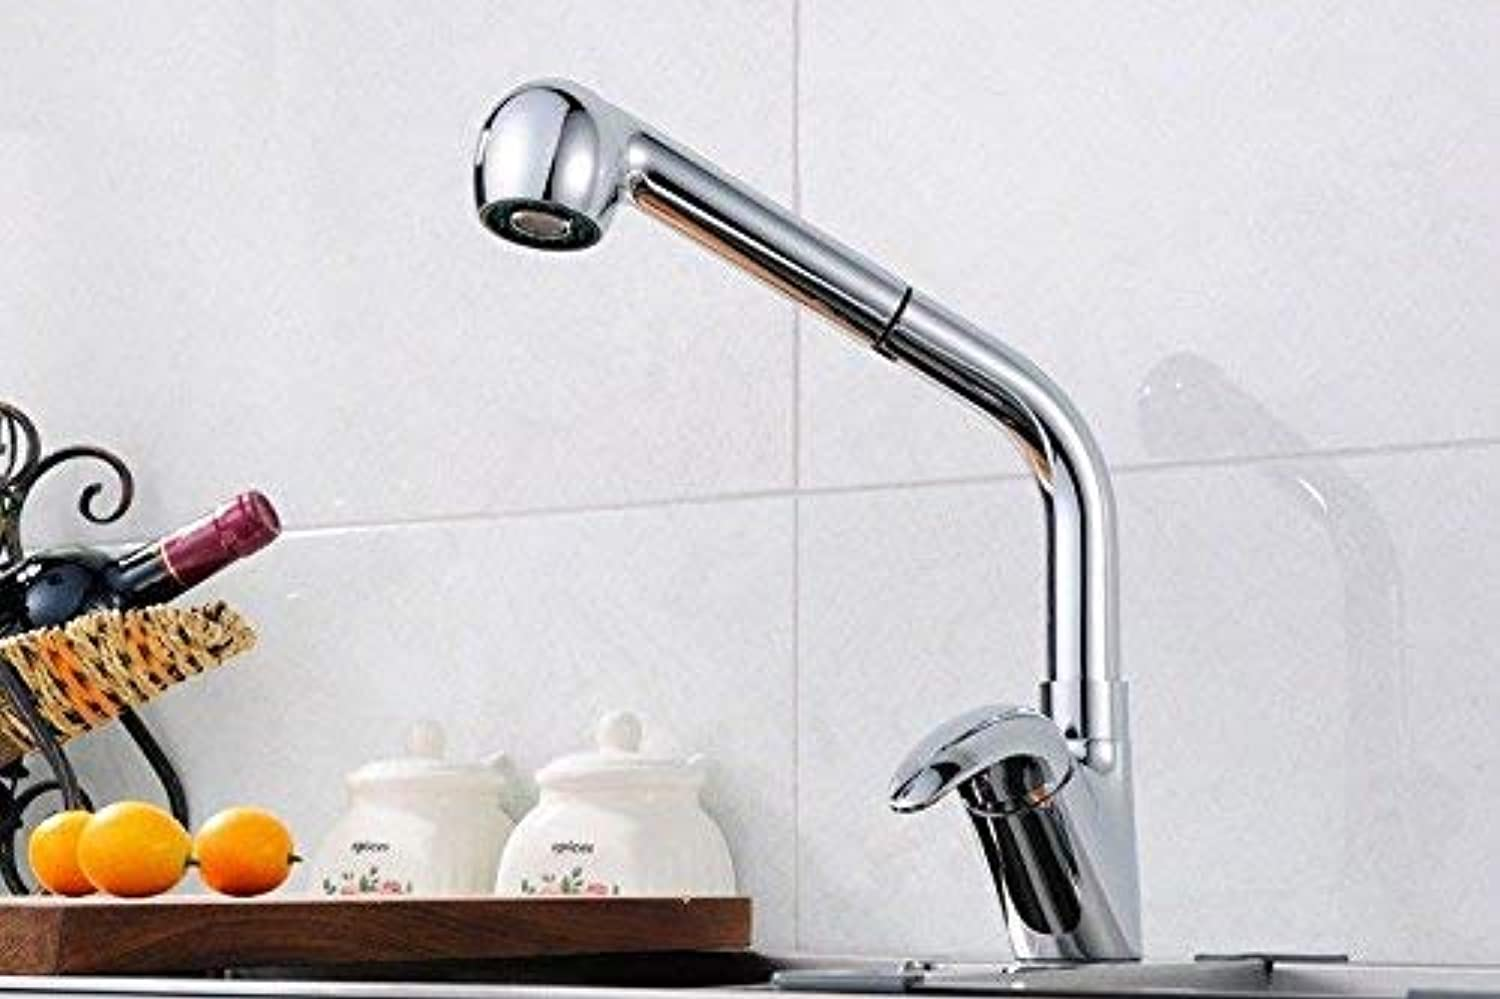 Oudan Kitchen faucet sink mixer taps kitchen sink tap pull-out spout head chrome cold and hot handle mixer taps (color   -, Size   -)